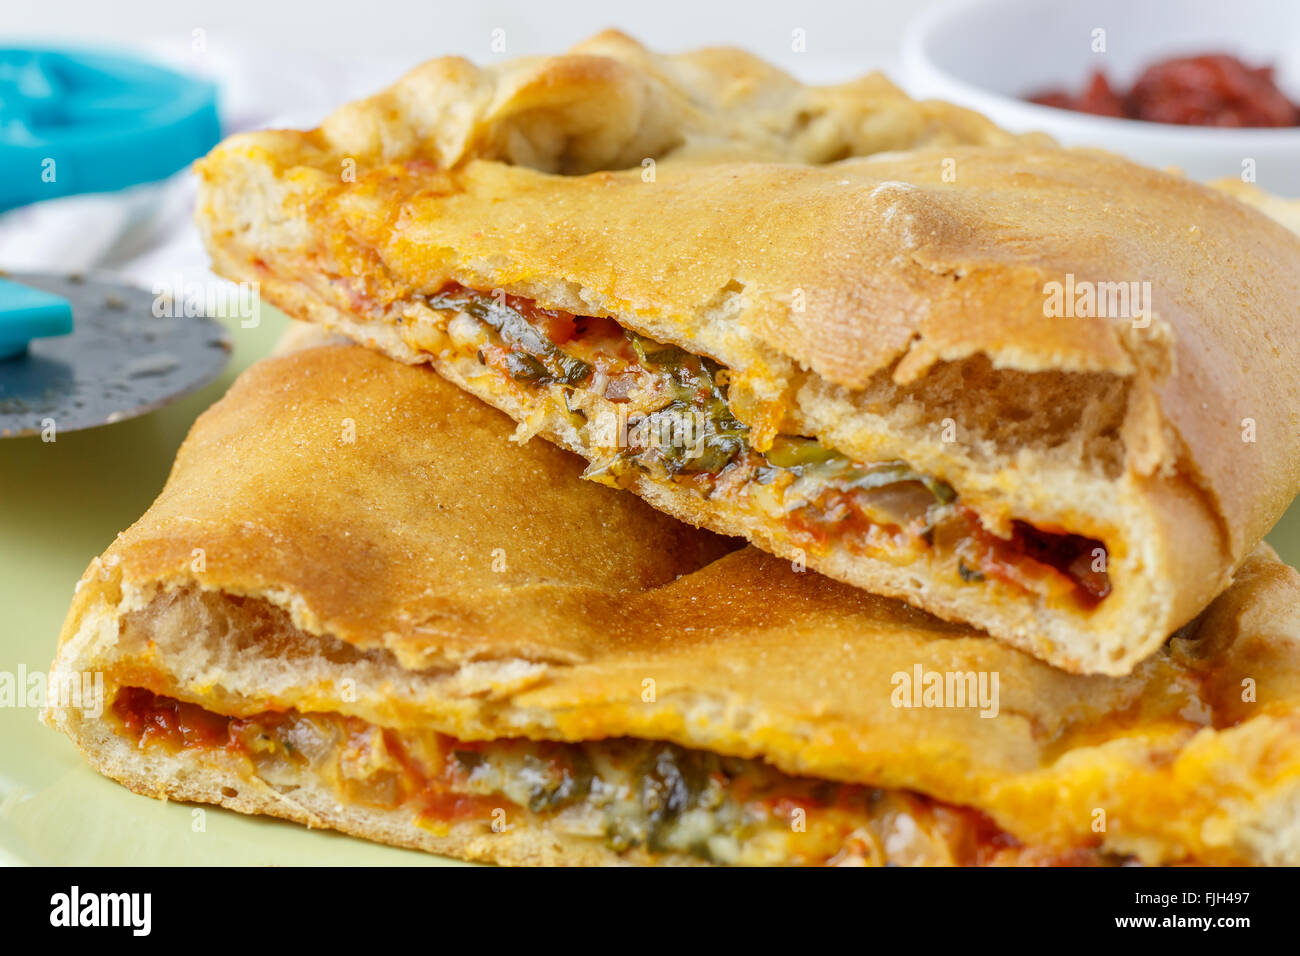 Calzone - Italian Oven-Baked Filled Pizza - Stock Image